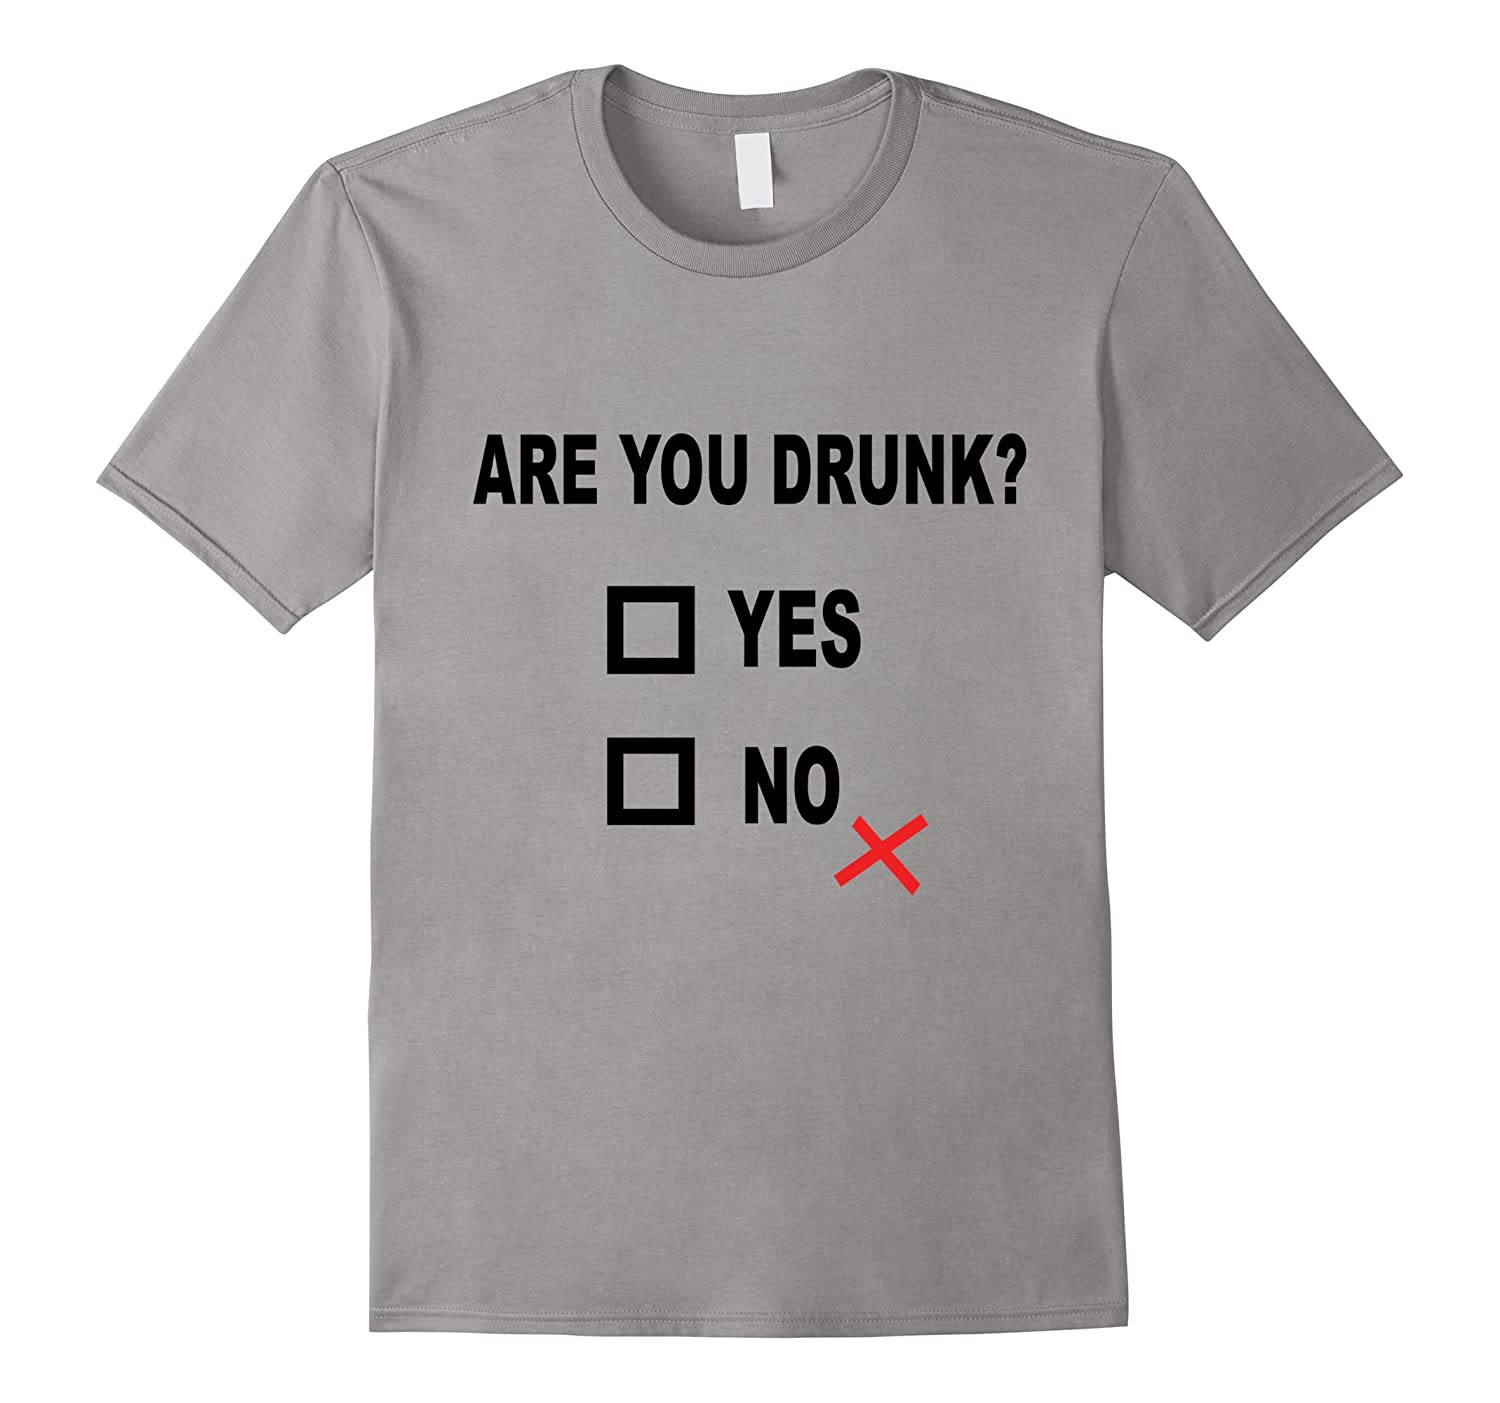 Are you drunk Yes or No - Funny Shirt-CD